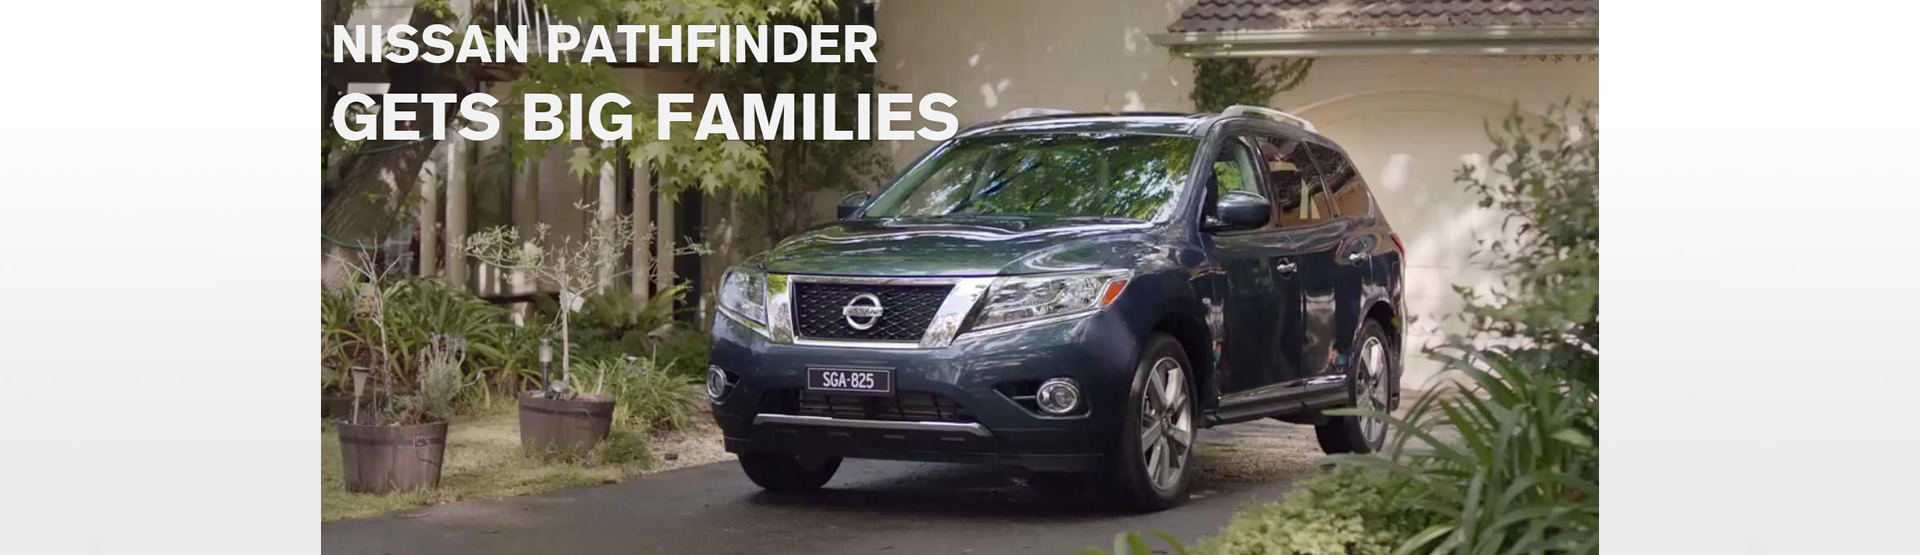 Big River Nissan Pathfinder